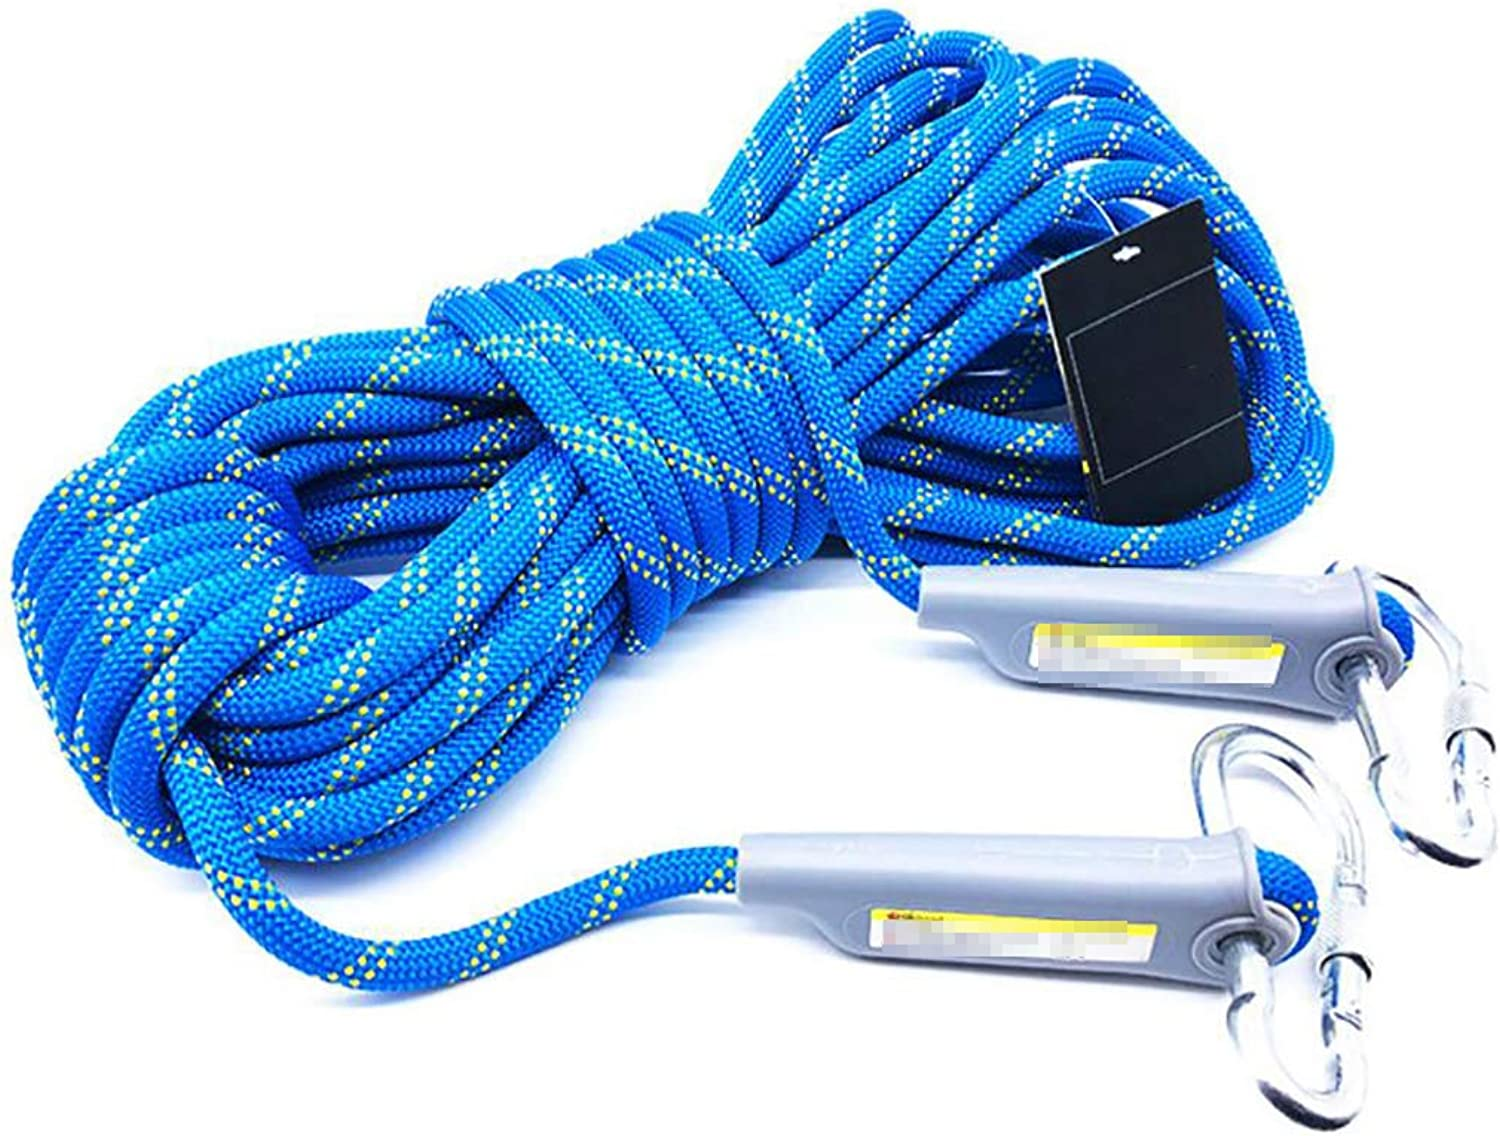 DPPAN Rock Climbing Safety Rope Outdoor, Professional High Strength with 2 Hooks, Hiking Parachute Escape,12mm_100m(328ft)